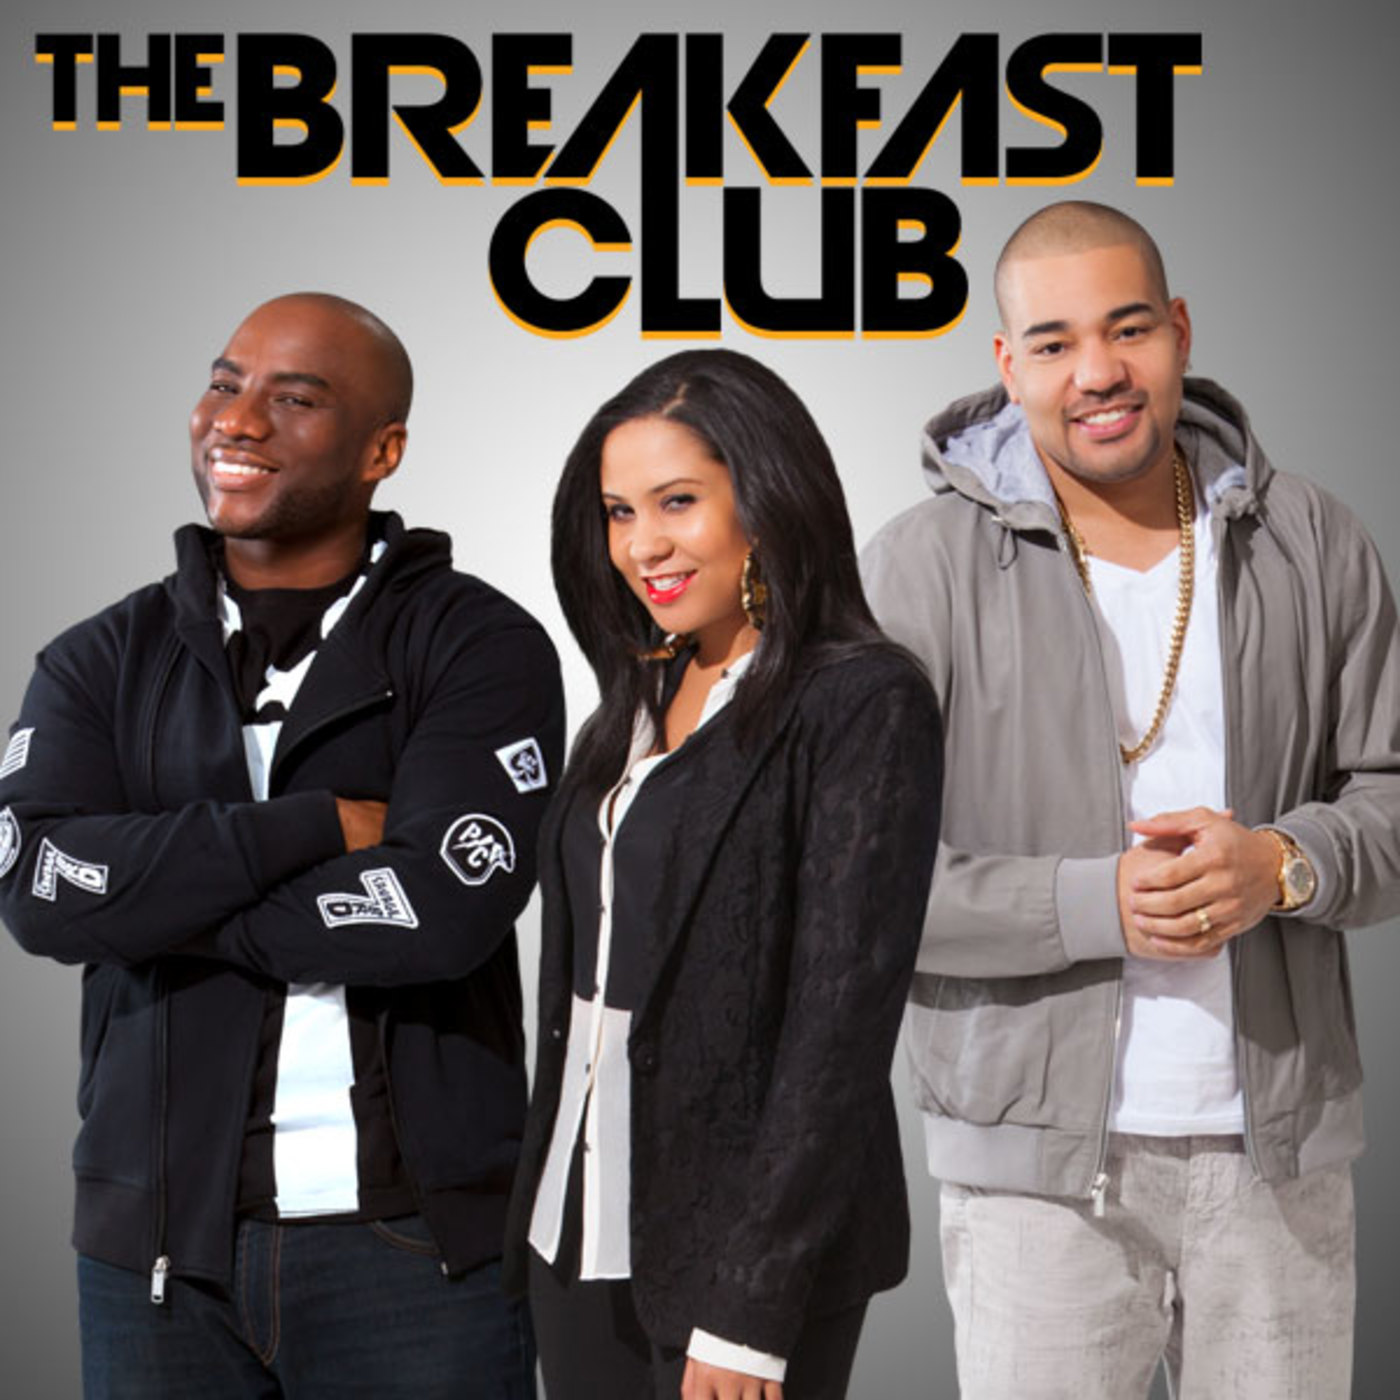 the breakfast club power 105 1 podcast